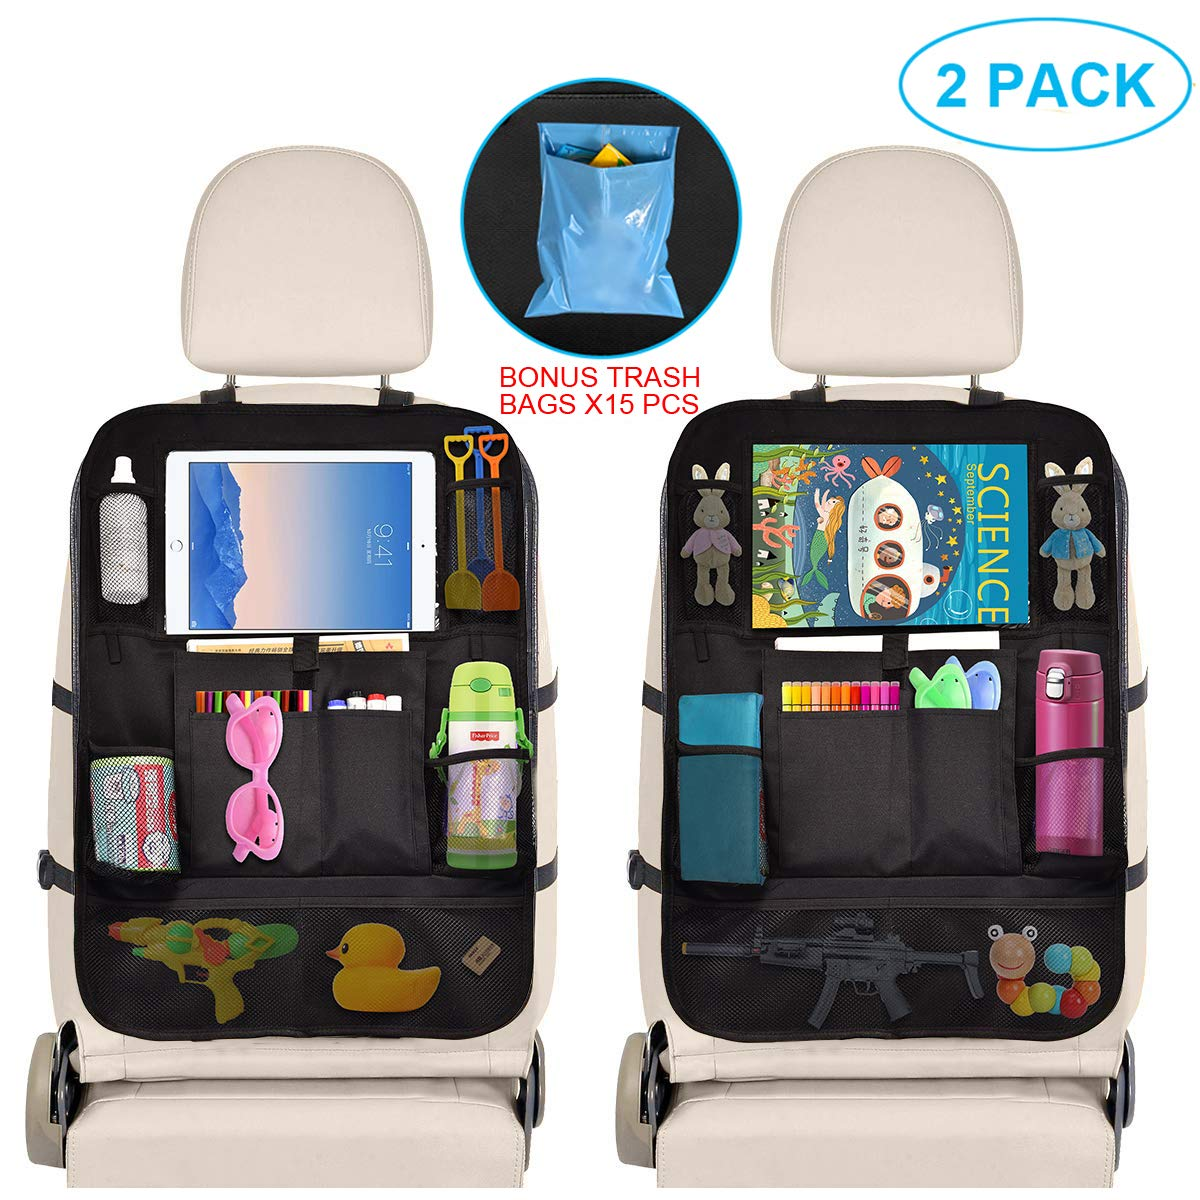 Car Organizer Back Seat - Car Accessories Storage Organizer with Touchscreen Tablet Holder Multi-Pocket - Car Seat Back Protector Kick Mats - Automotive Travel Accessories for Kids Toddlers (2 Pack) by VISSON